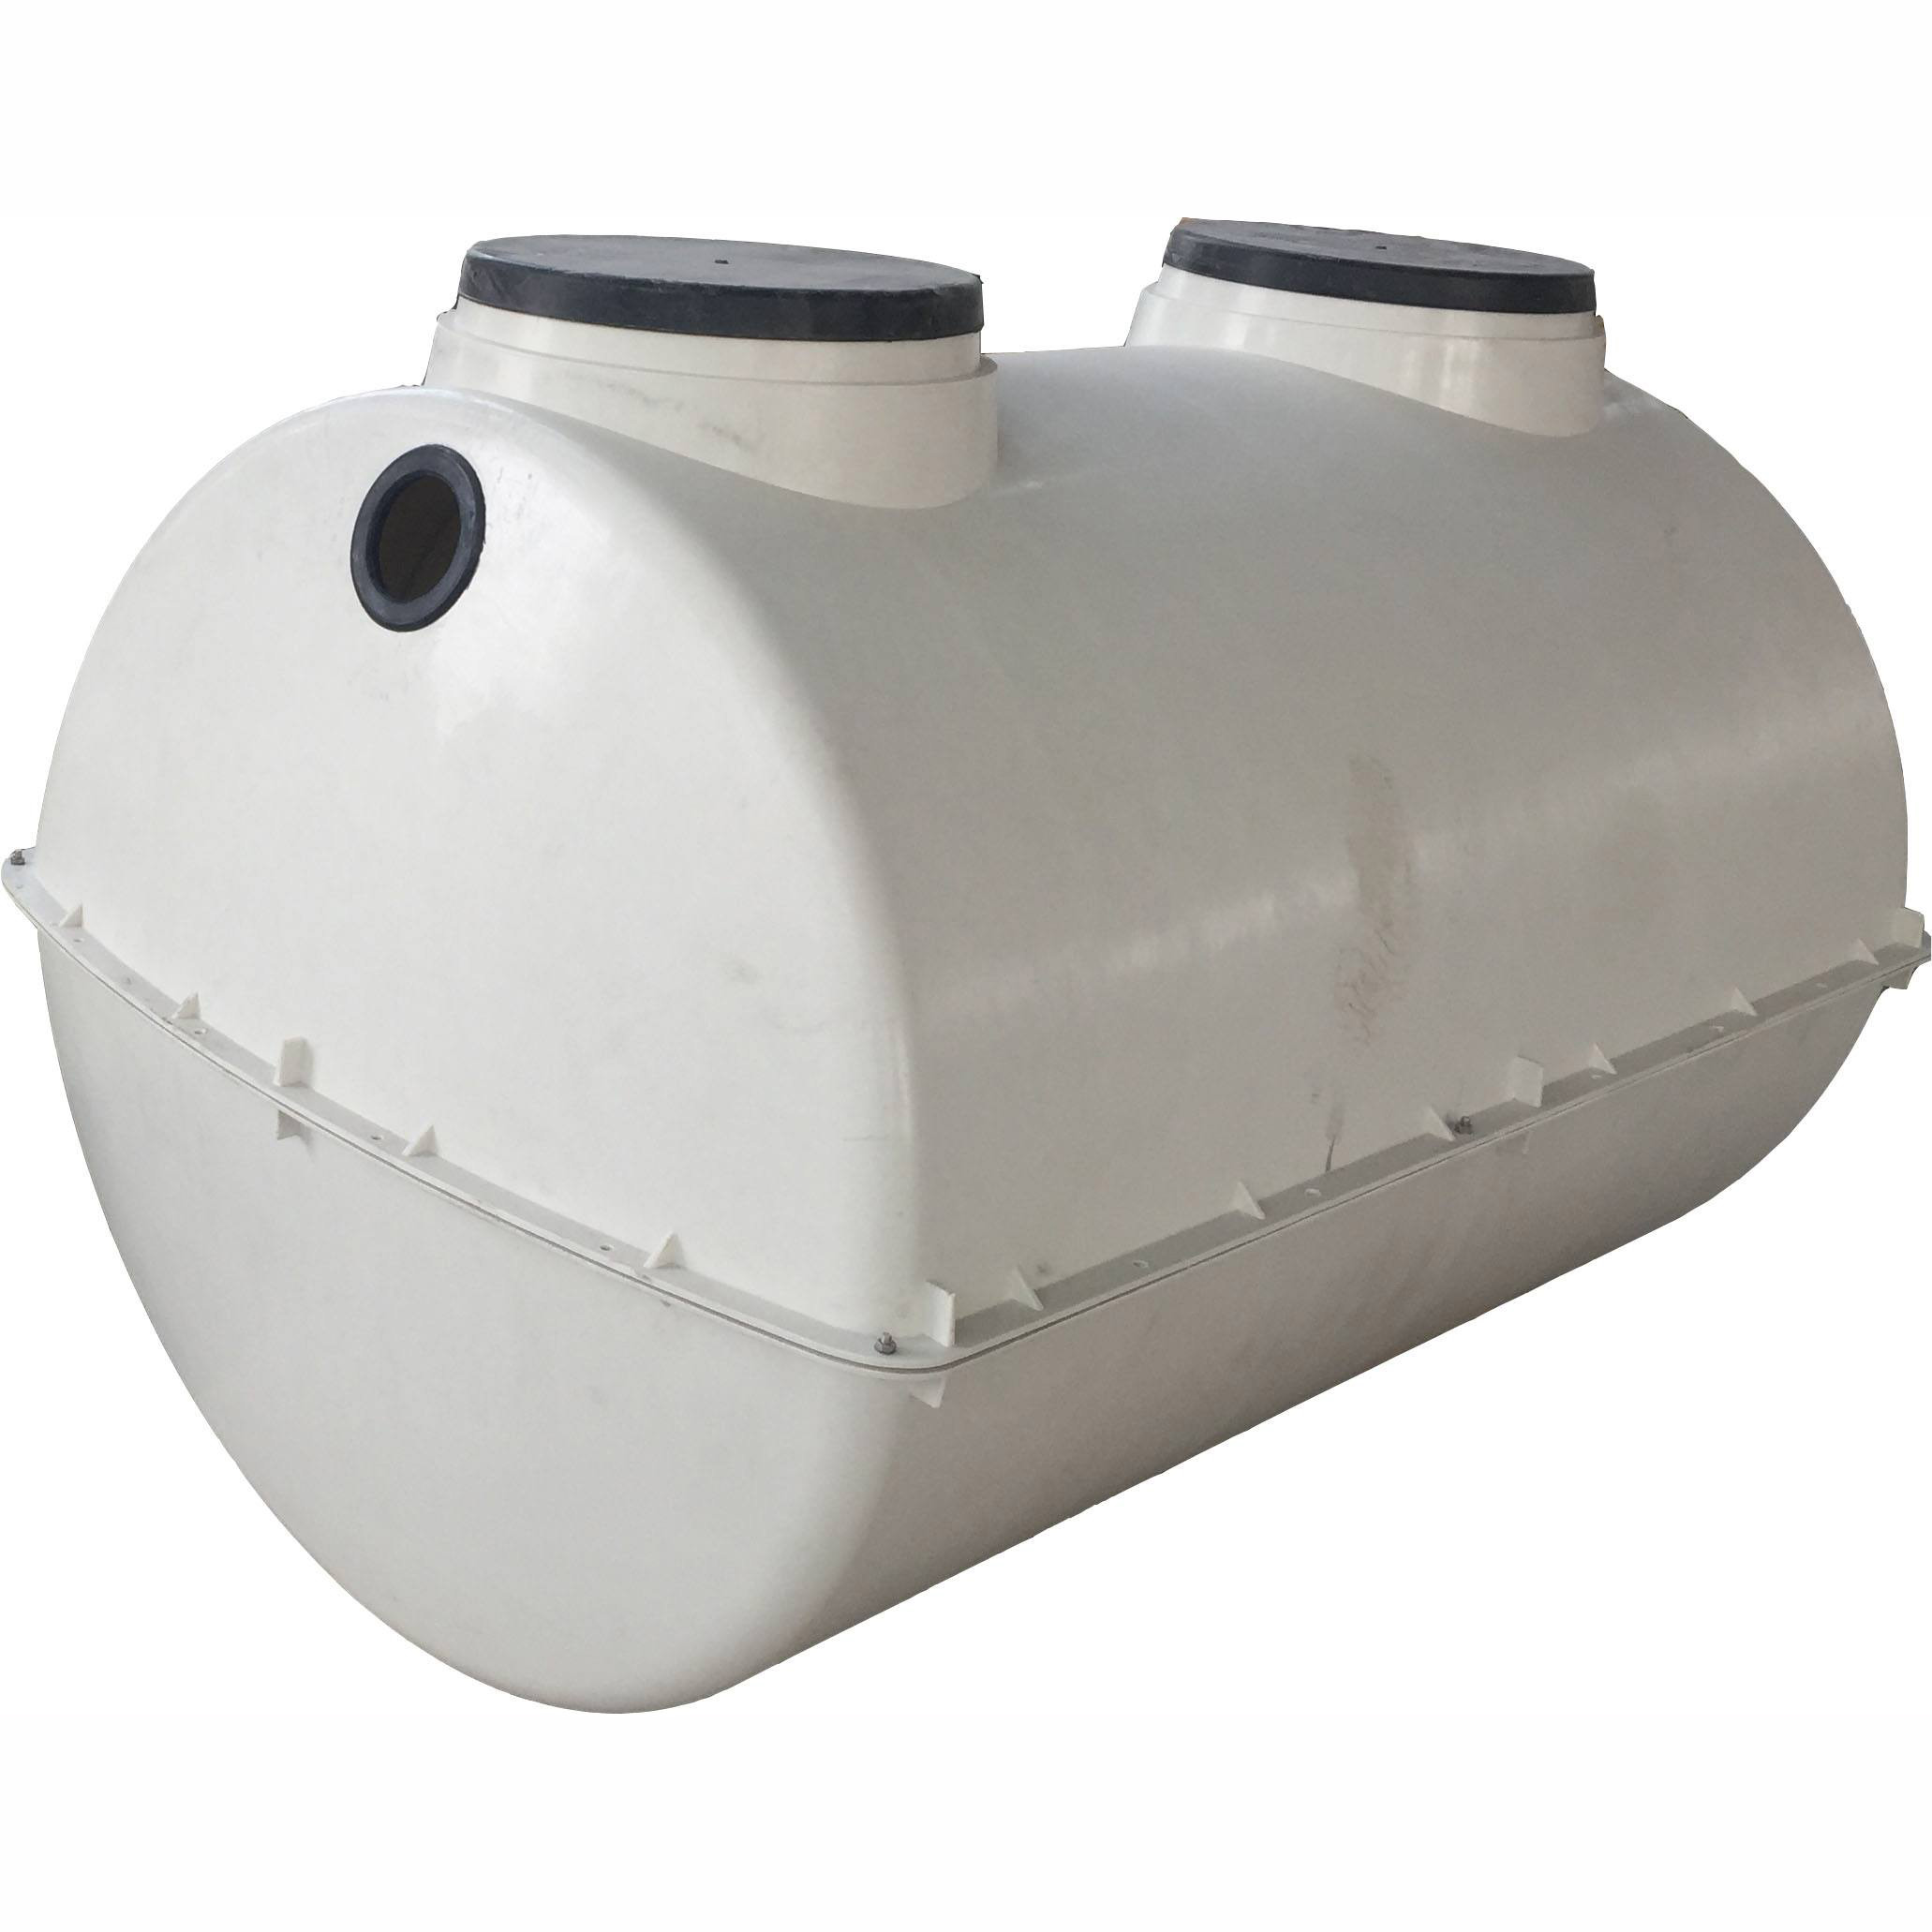 Eco-friendly SMC Septic tank use for Domestic sewage treatment made in China